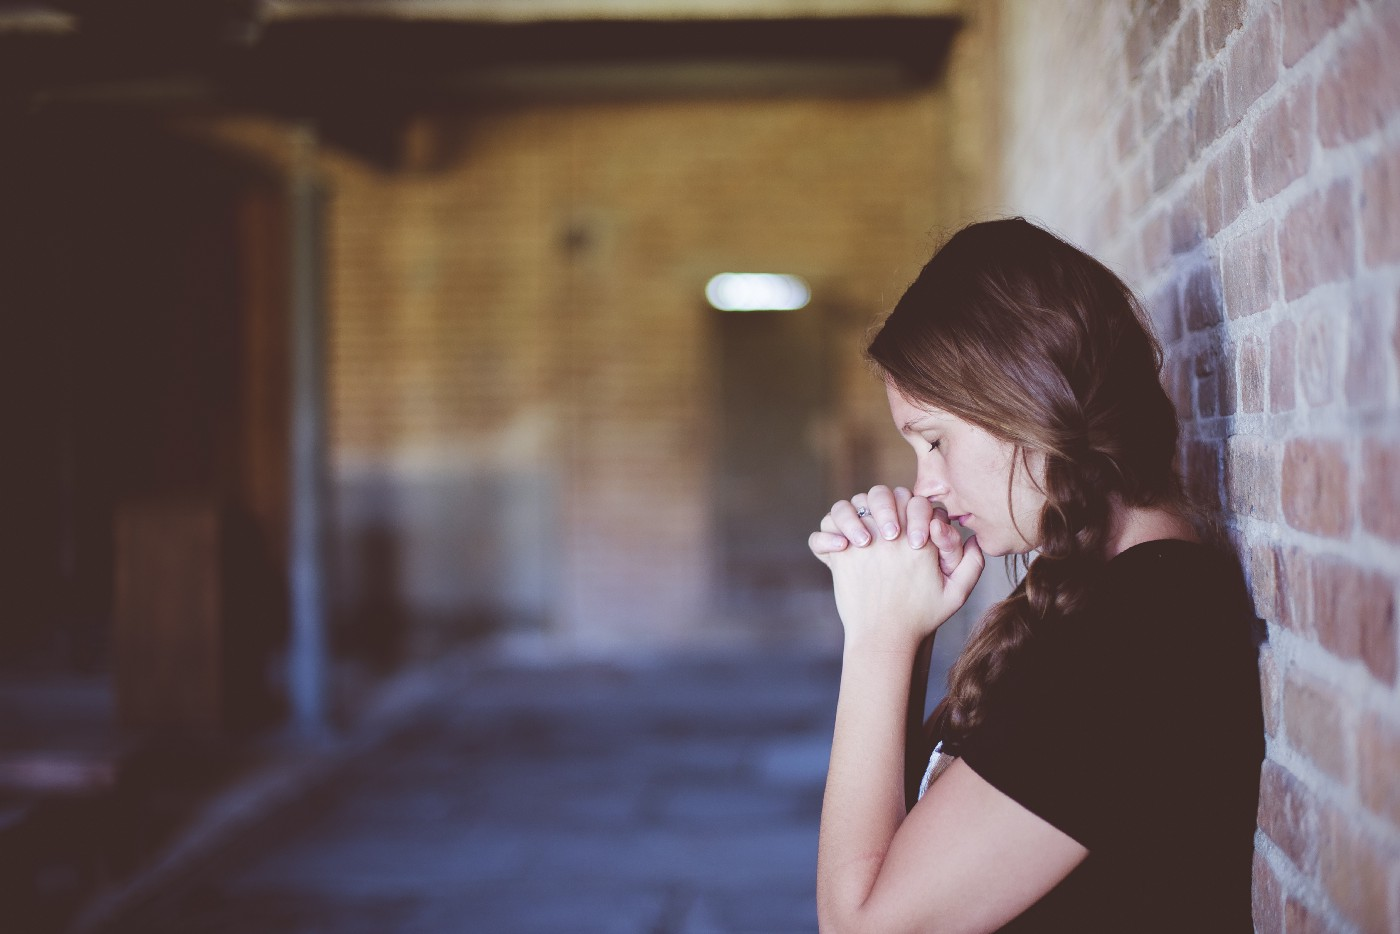 Woman with plaited braid praying with back to a brick wall.